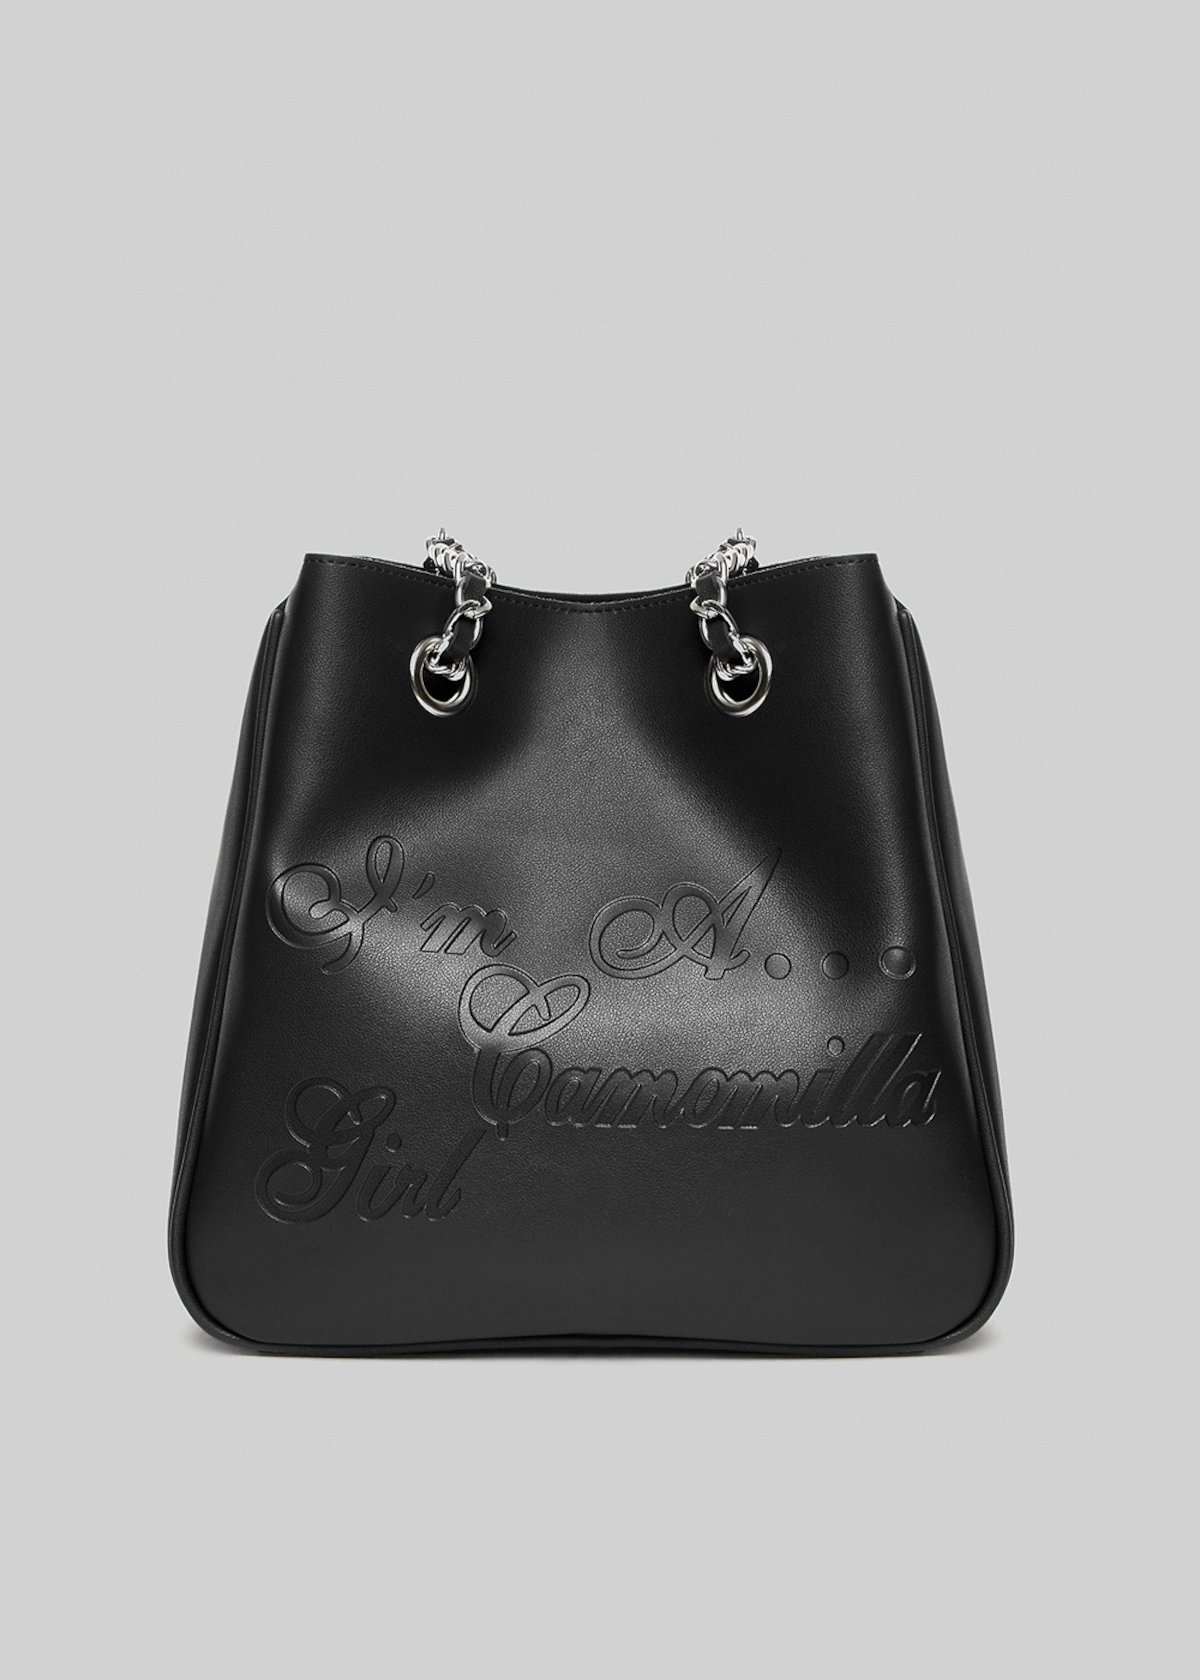 Mincamunl imitation leather shopping bag with chain handles